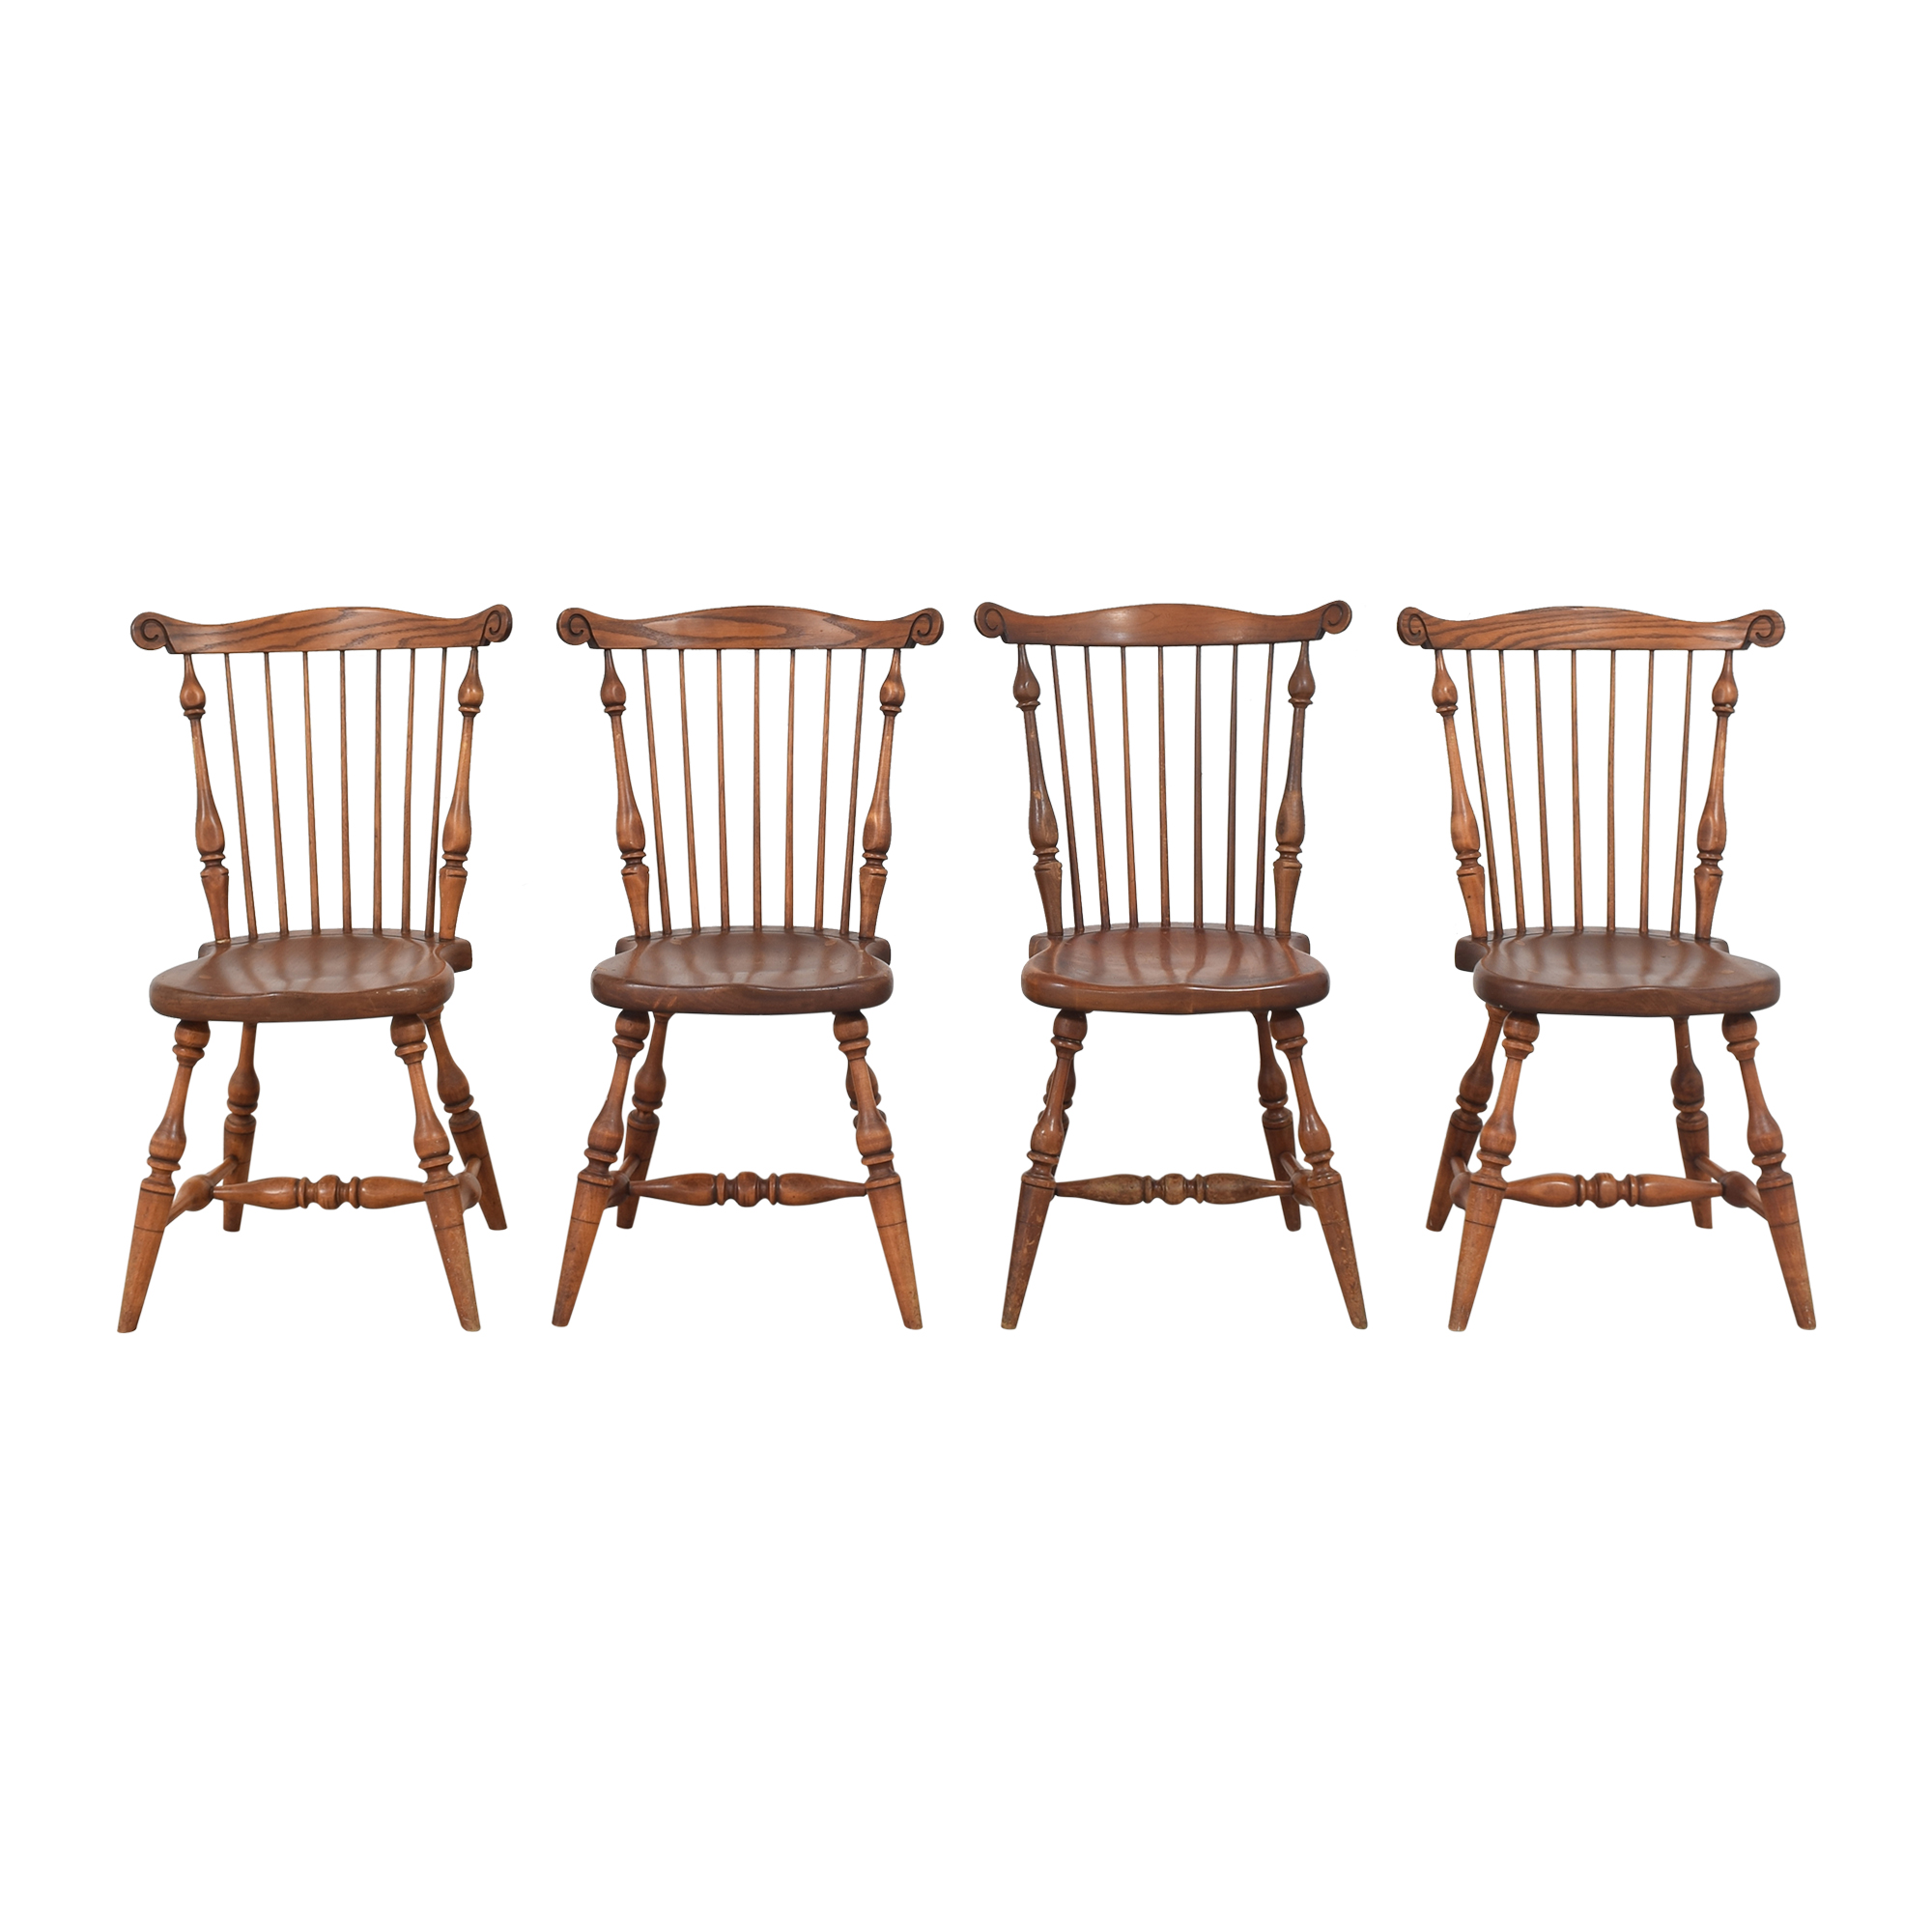 Duckloe Comb Back Windsor Dining Side Chairs / Chairs